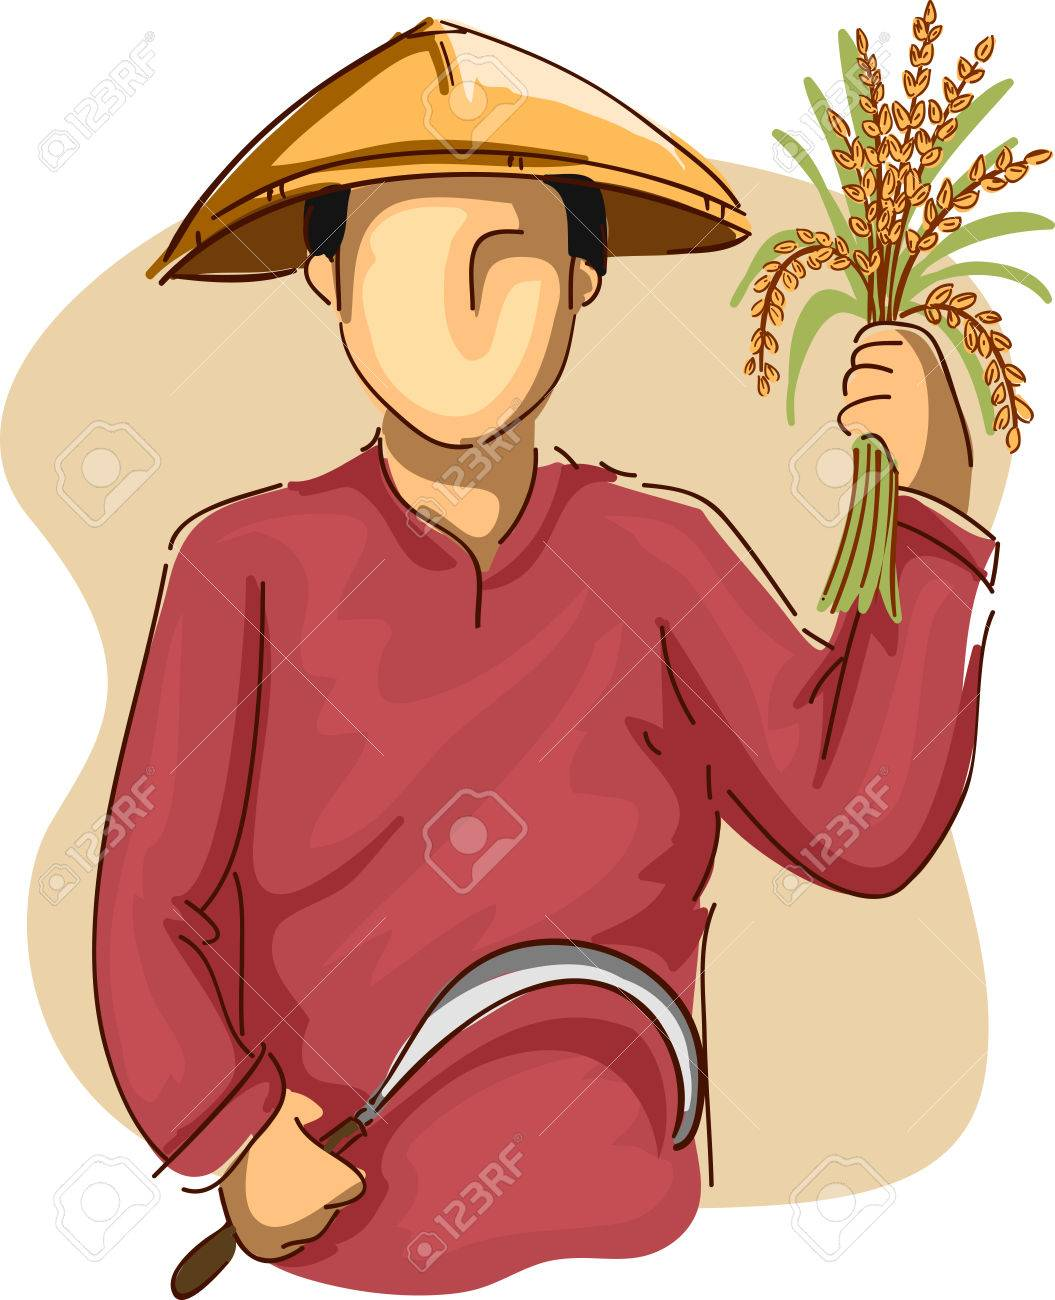 Agriculturist Harvest Rice Vector Design Royalty Free Cliparts, Vectors,  And Stock Illustration. Image 56497136.